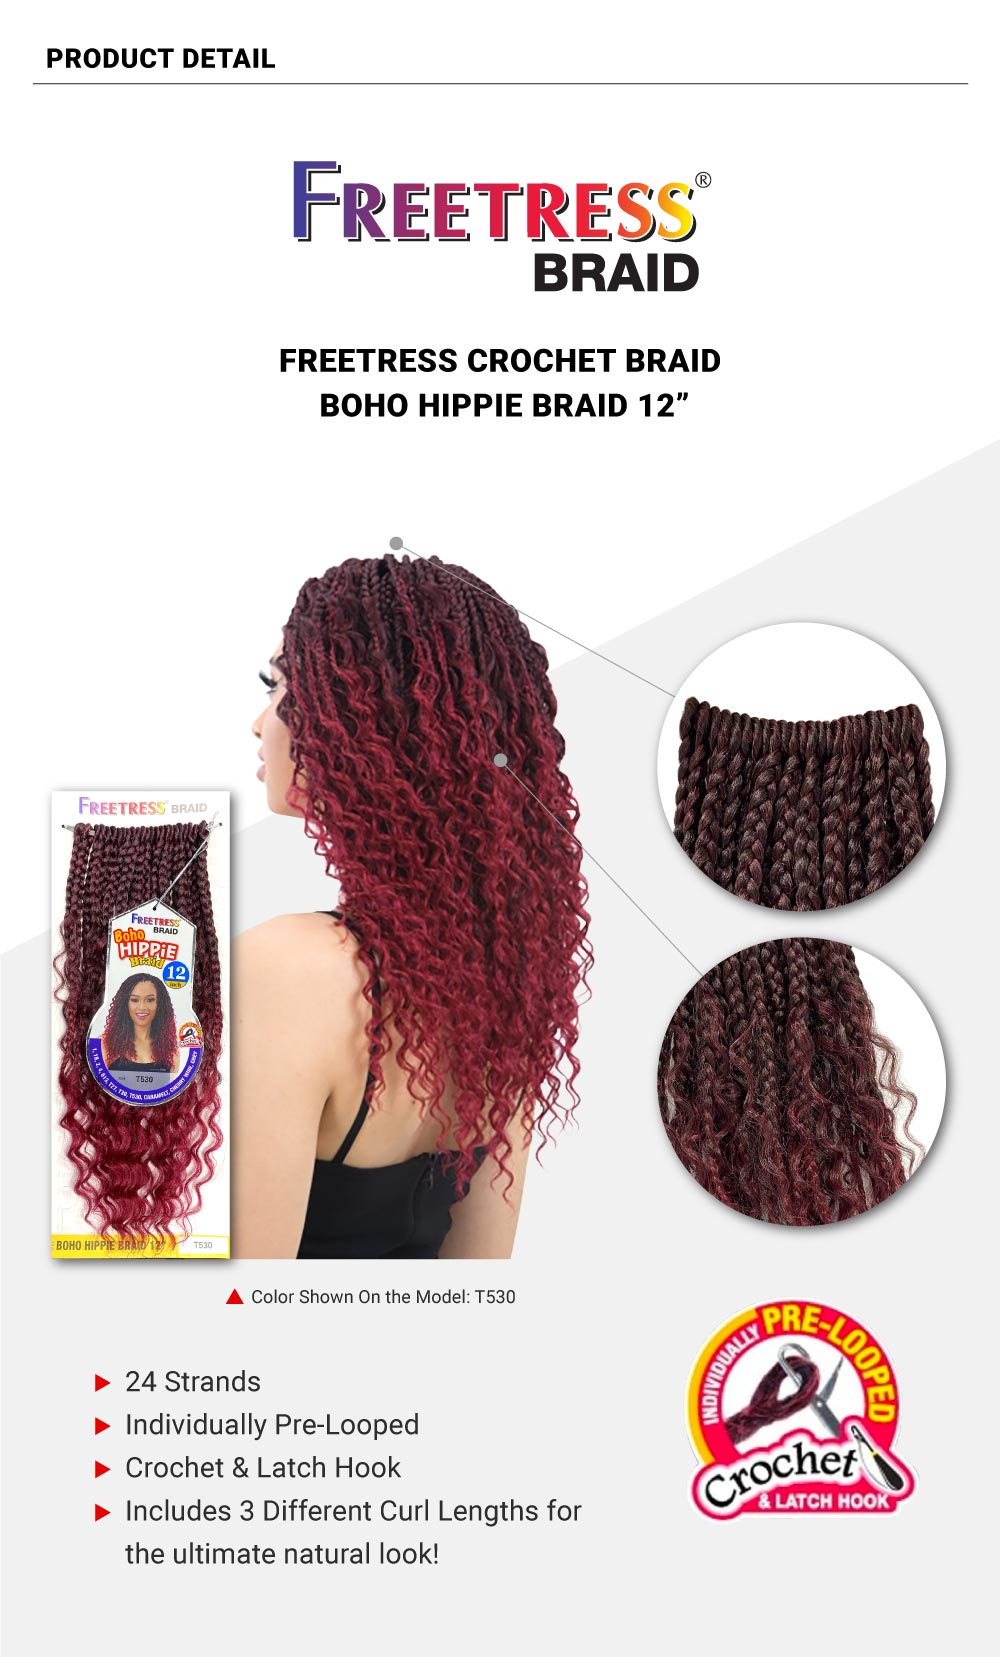 Freetress-Crochet-Braid-Boho-Hippie-Braid-12inch